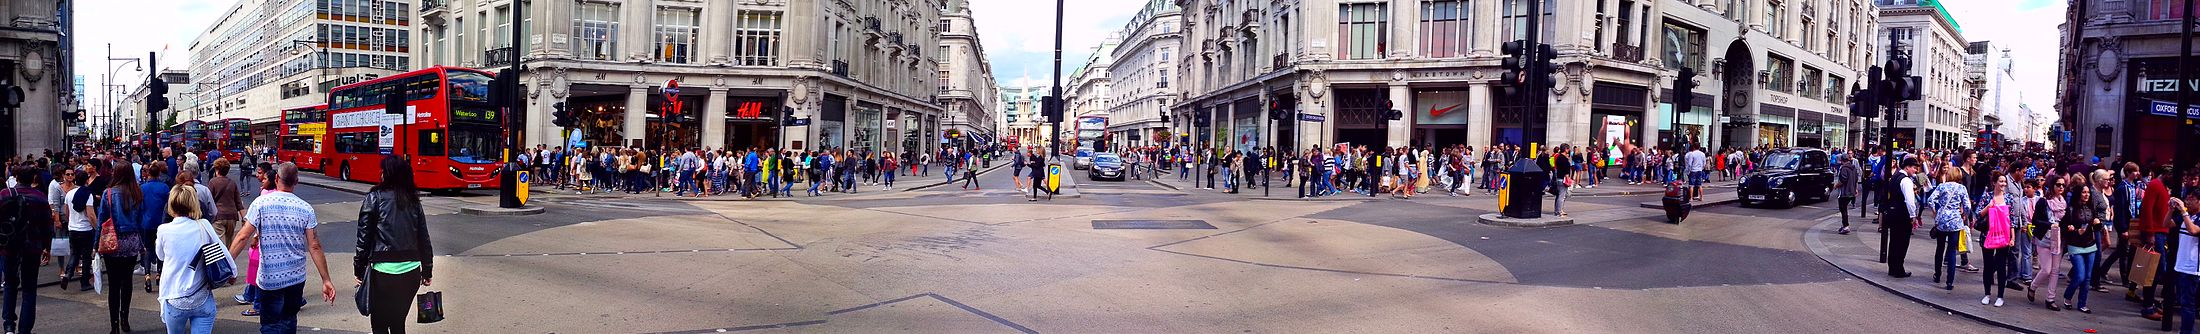 Oxford circus panorama.jpg